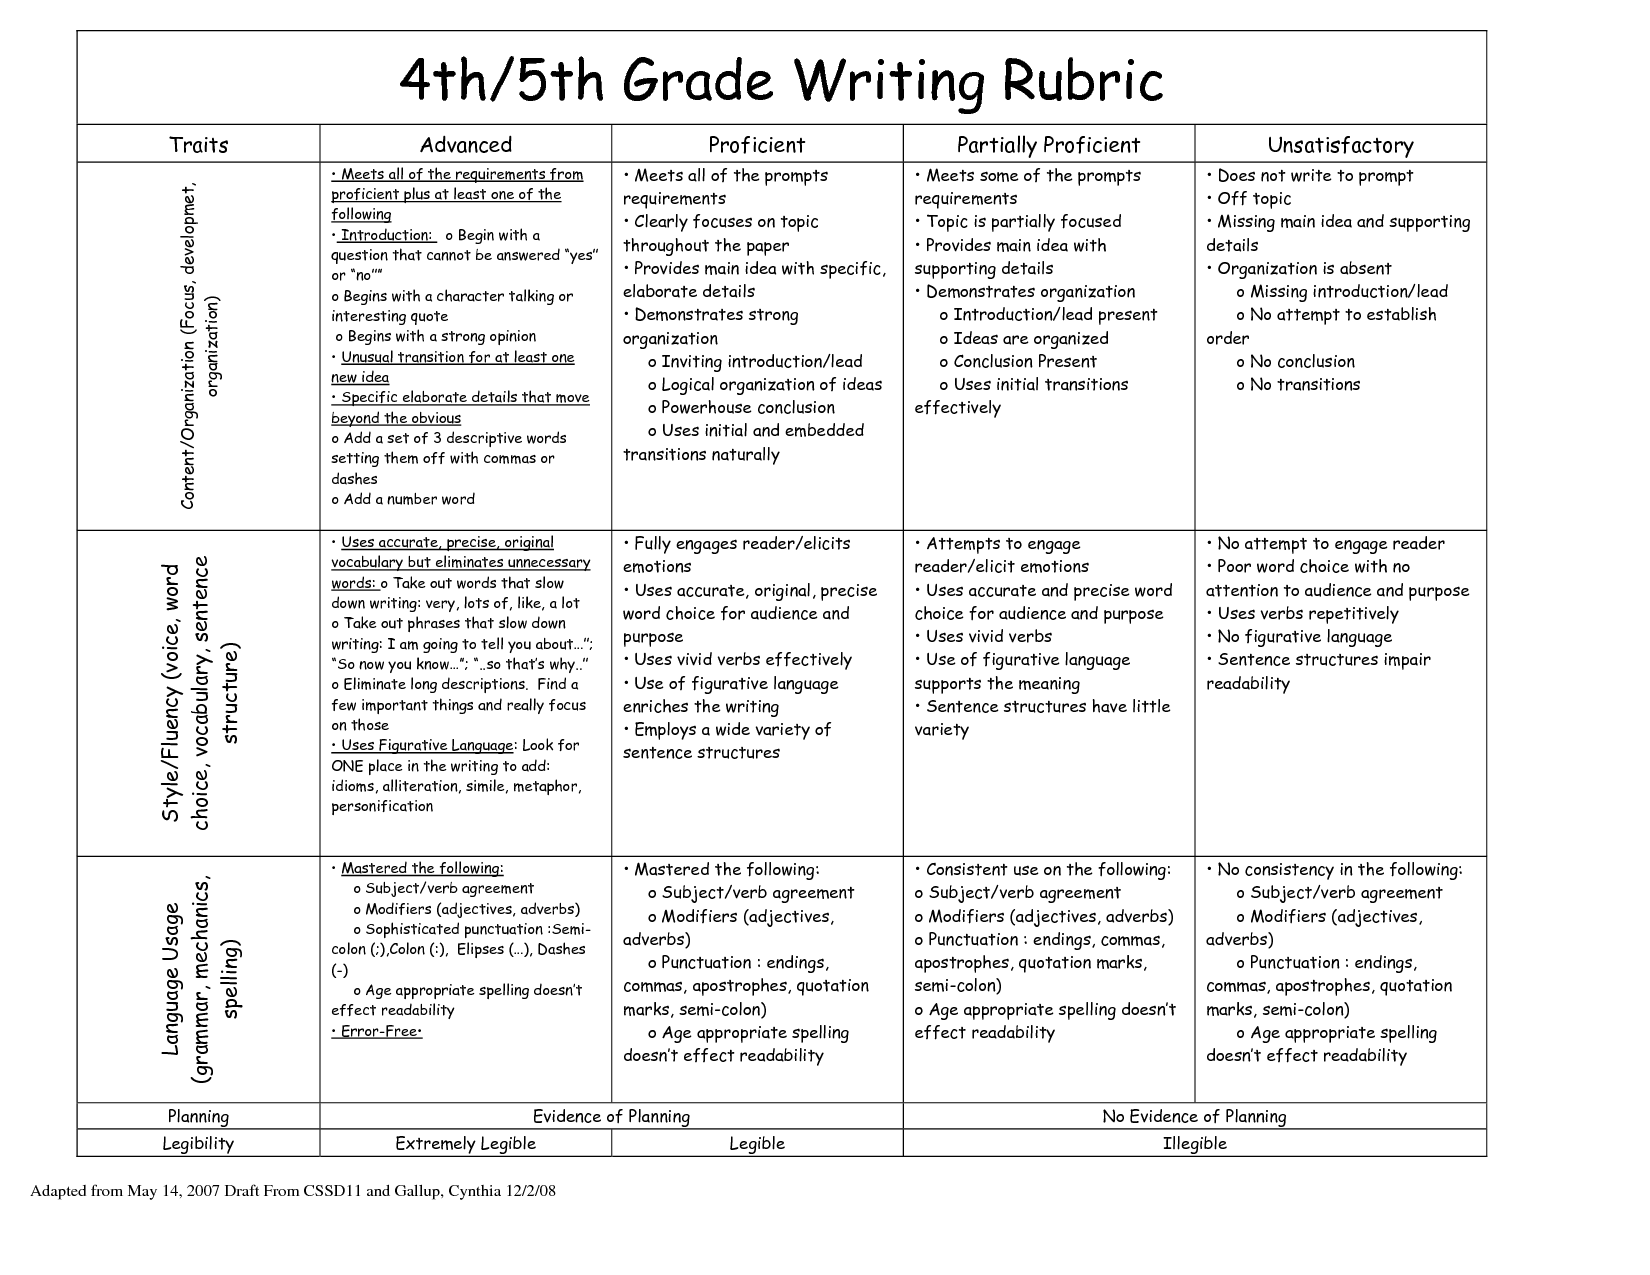 Pin By Shelley Greenfield On Writing Writing Rubric Math Worksheets Opinion Writing Rubric [ 1275 x 1650 Pixel ]